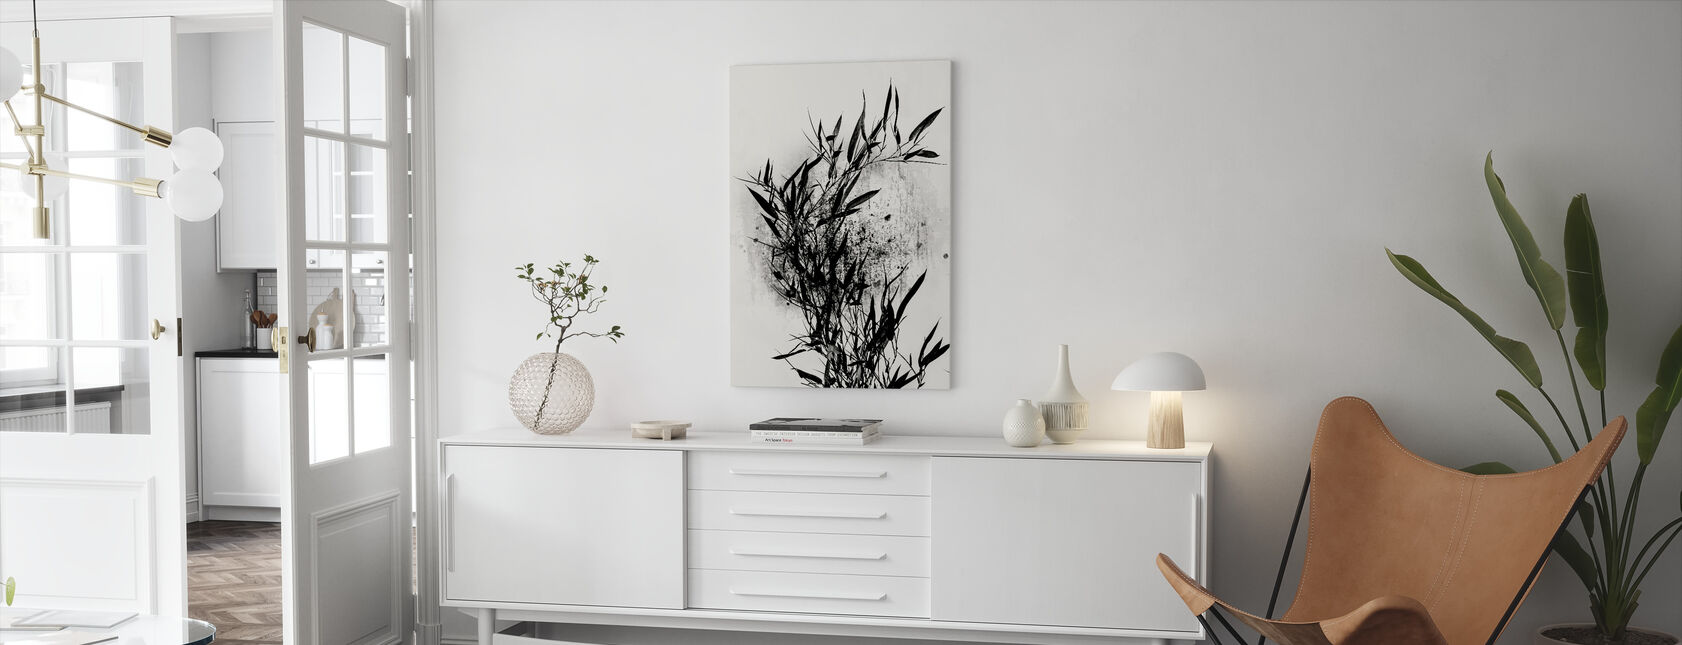 Black Orchidee - Canvas print - Living Room